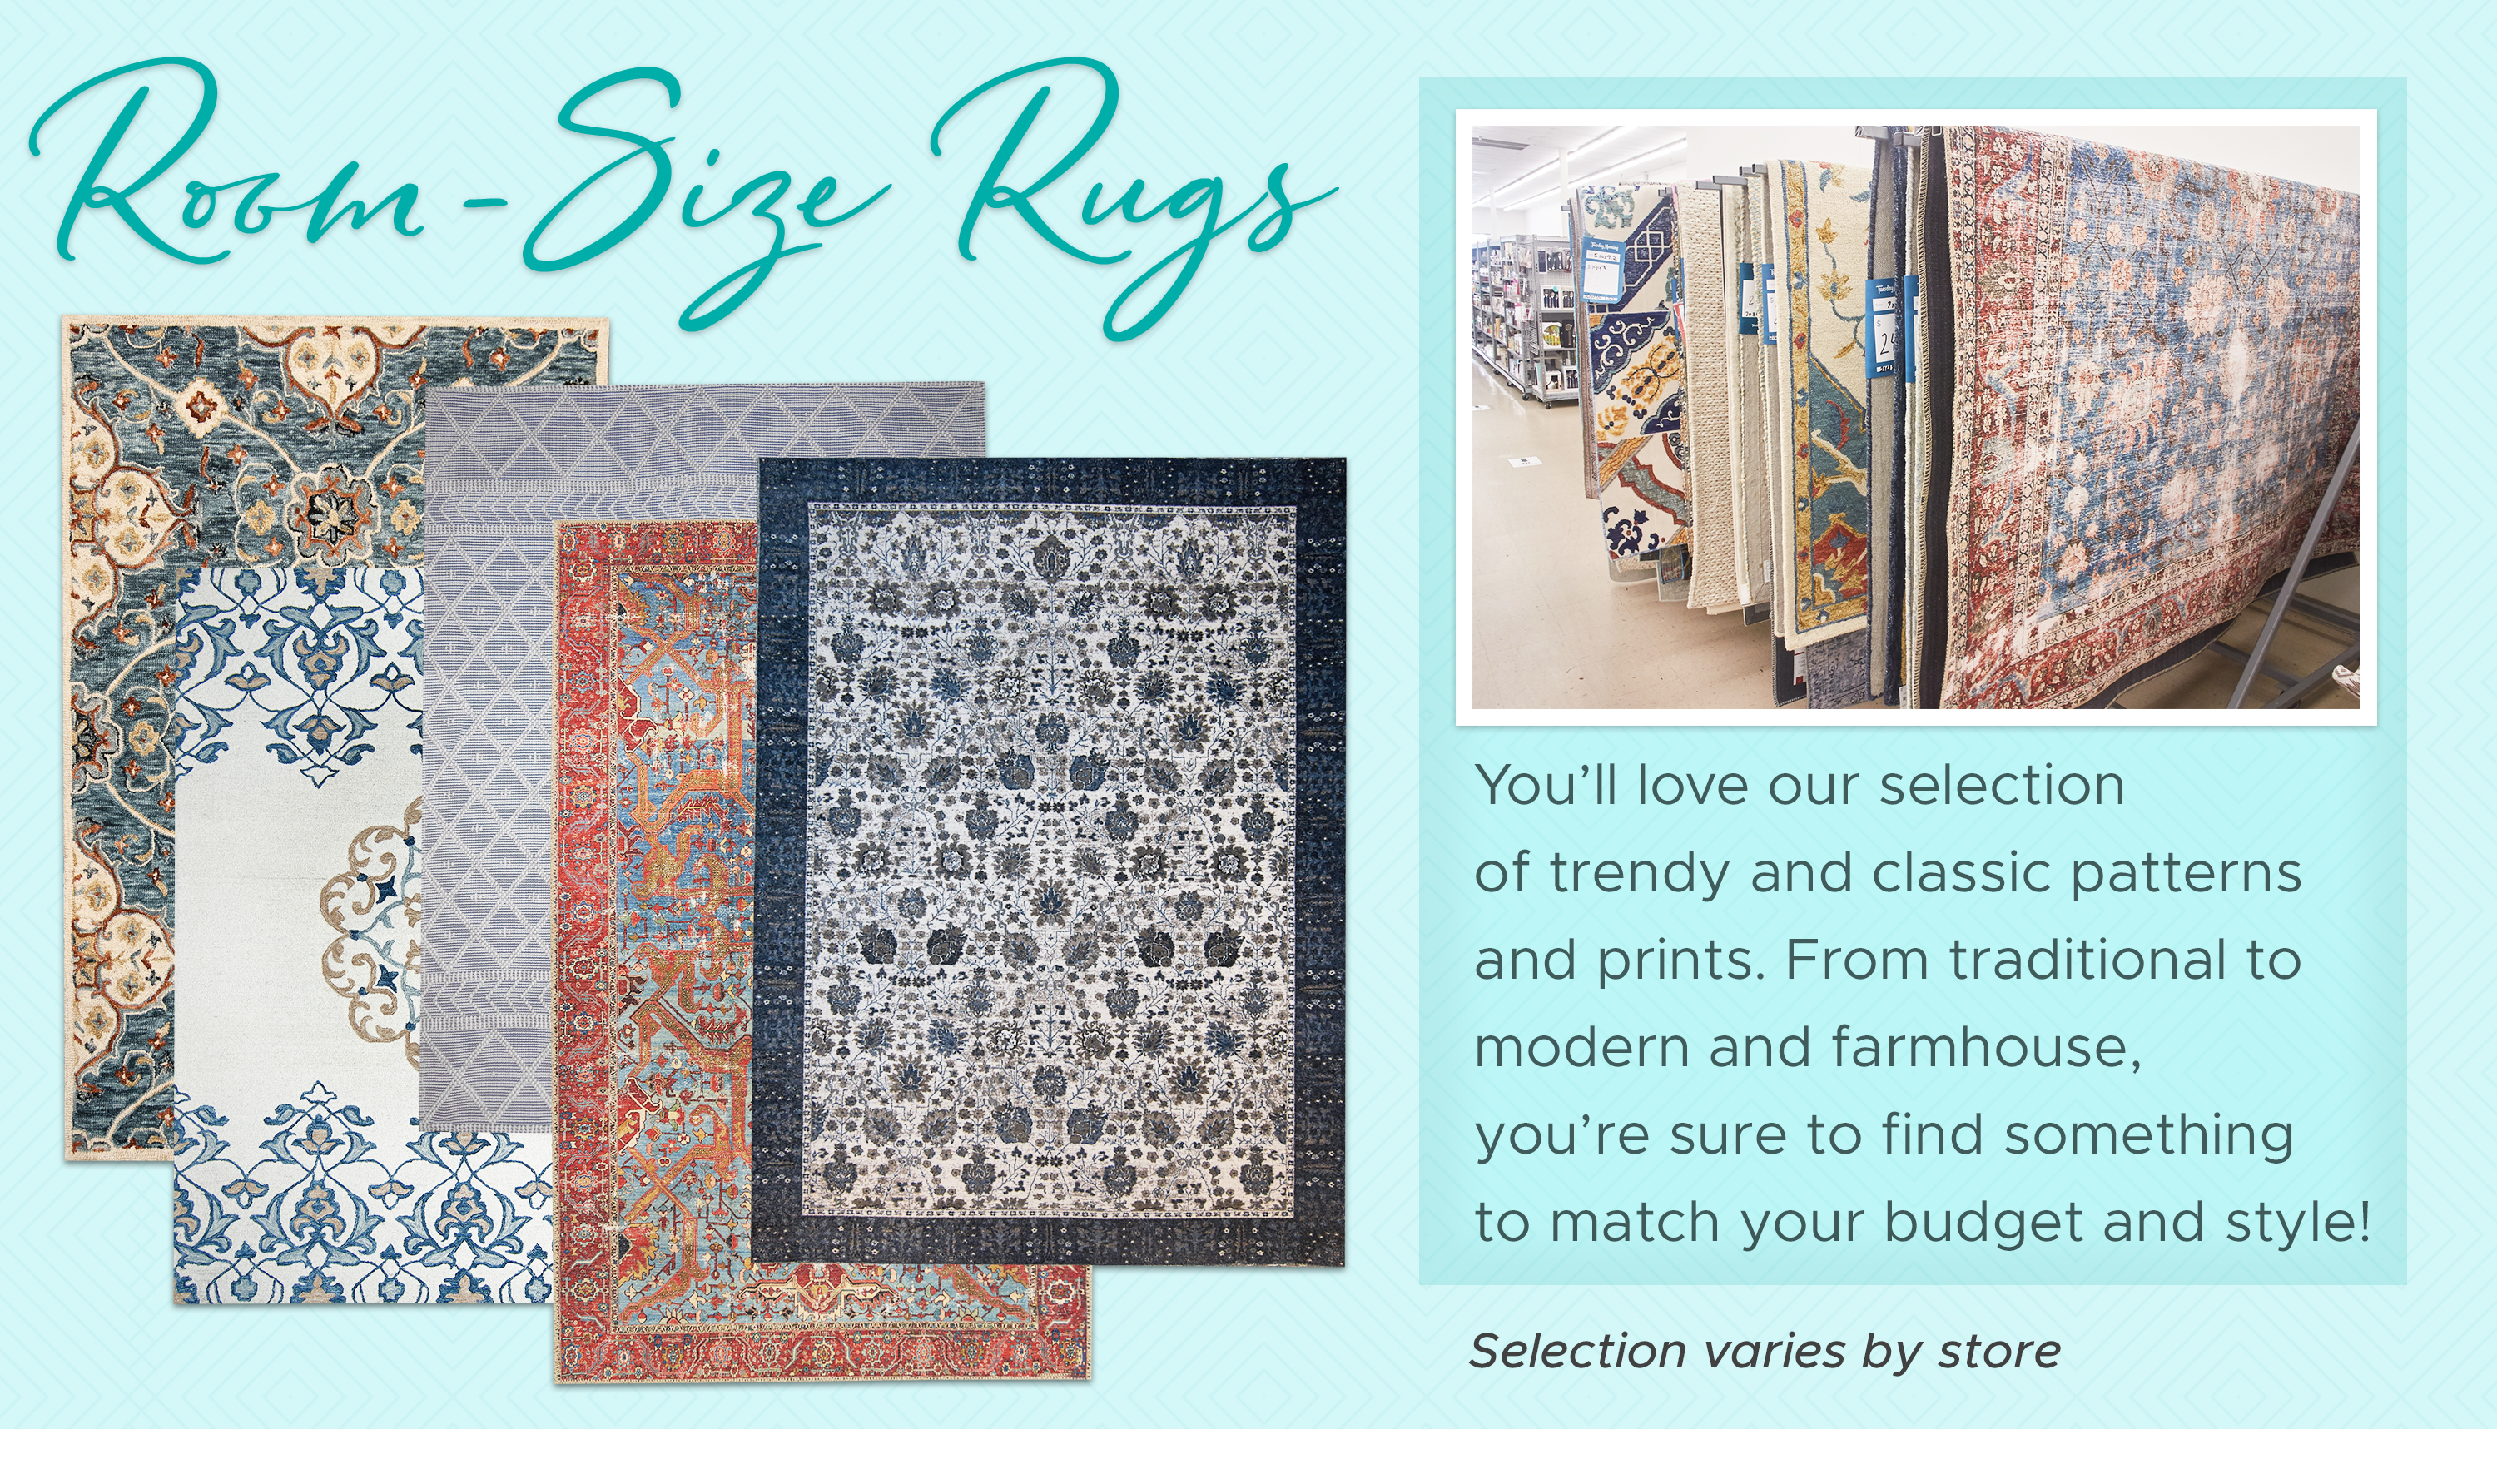 Room-Size Rugs - You'll love our selection of trendy and classic patterns and prints